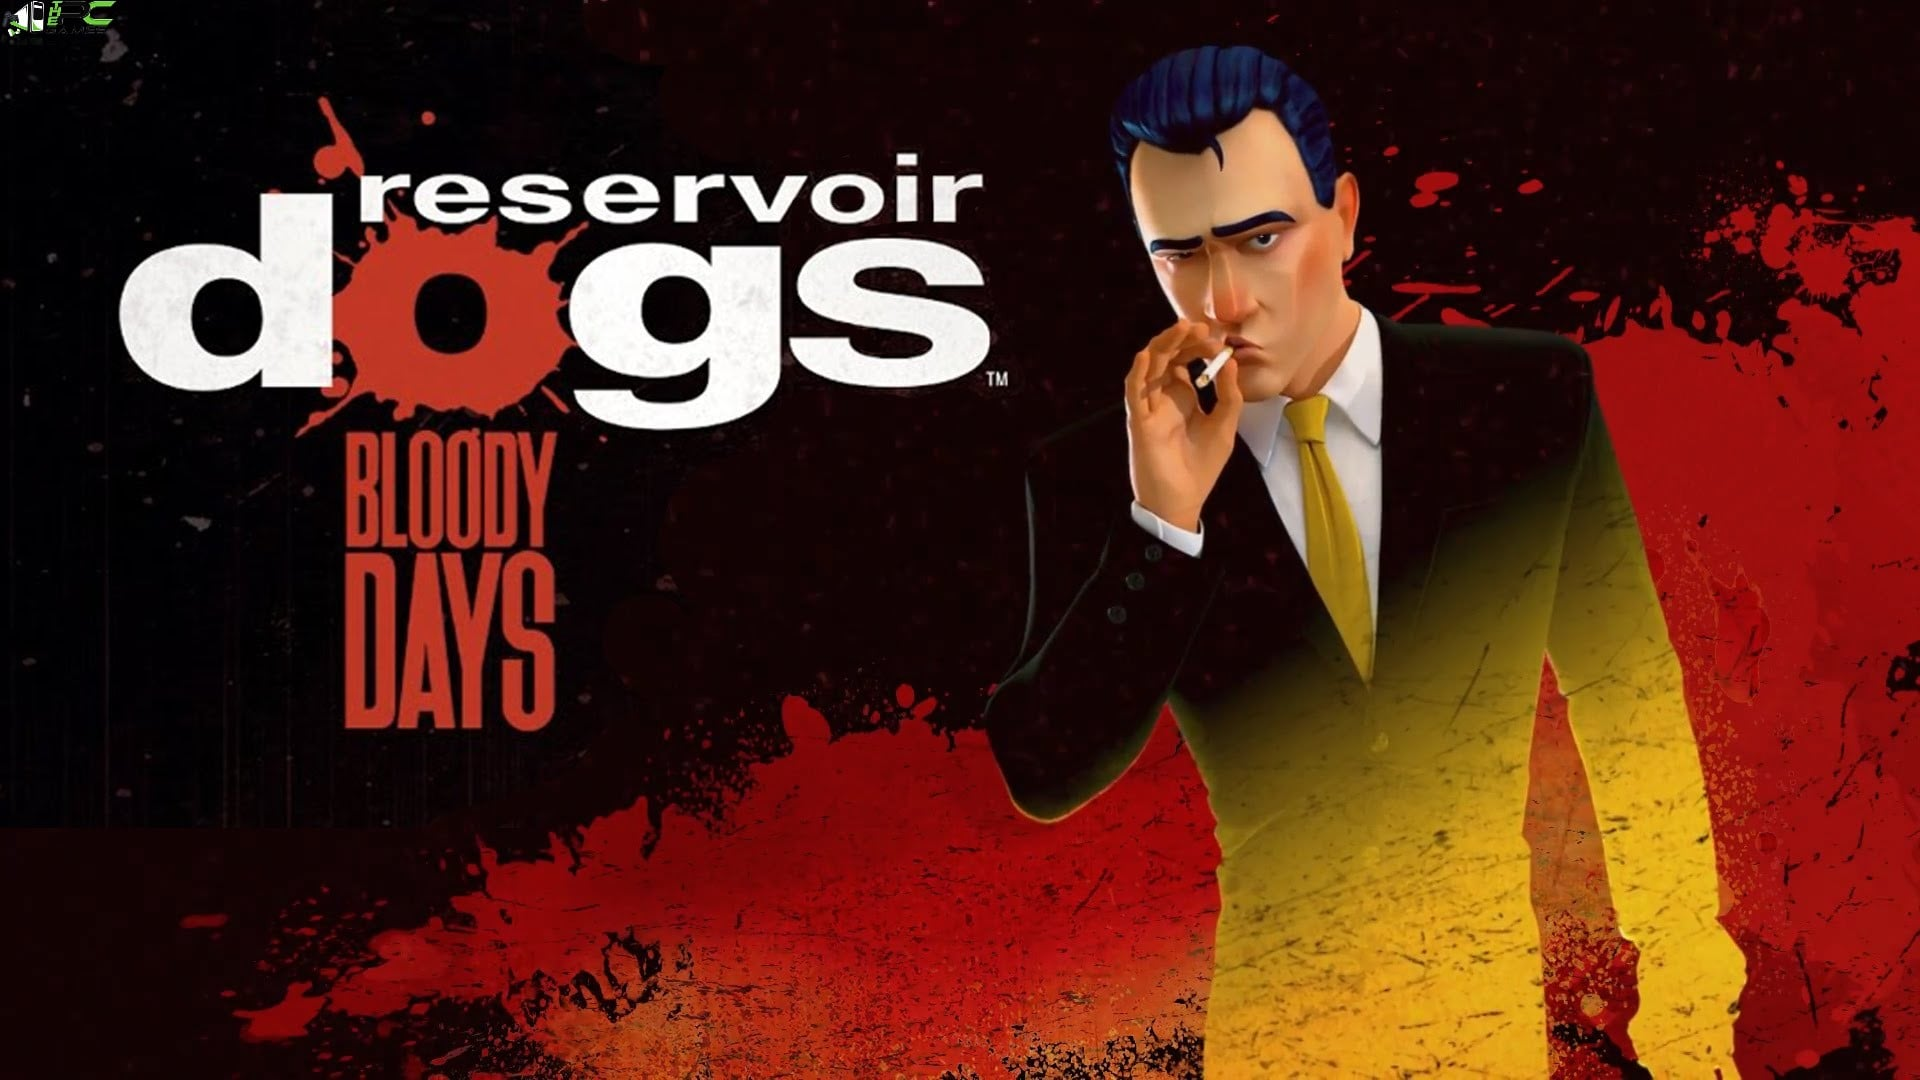 Reservoir Dogs Bloody Days Cover